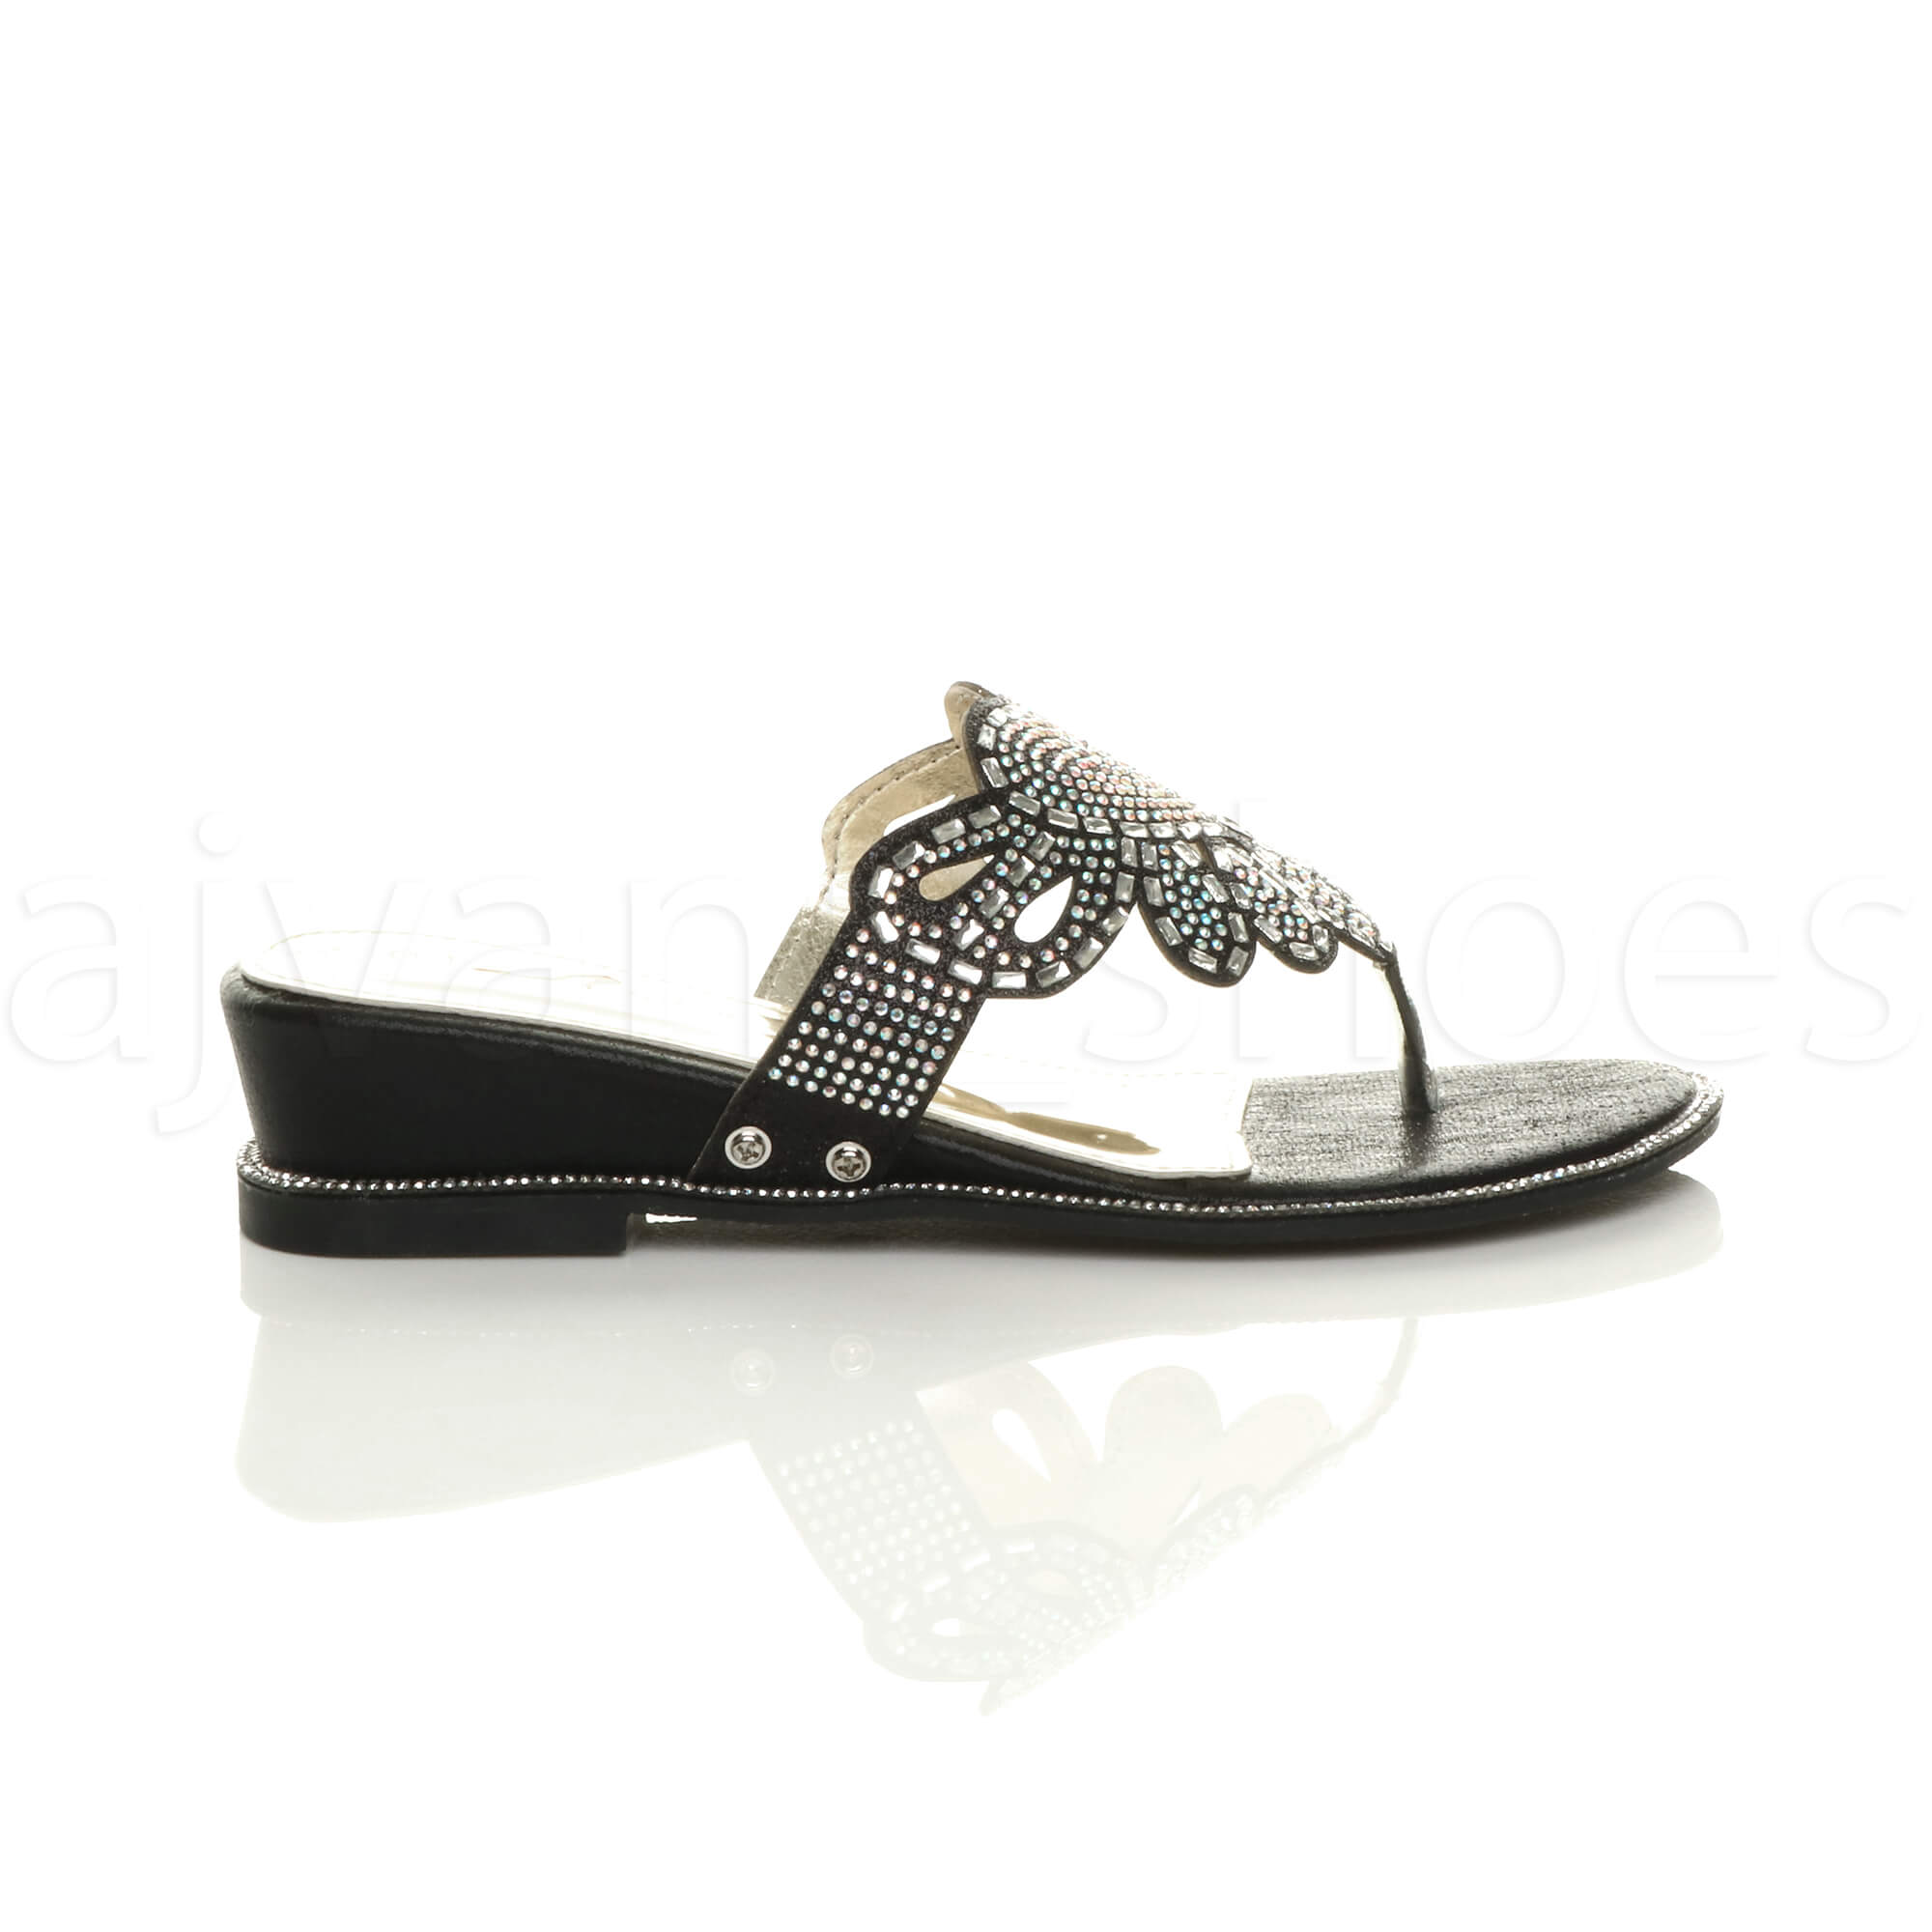 WOMENS-LADIES-LOW-MID-WEDGE-HEEL-DIAMANTE-EVENING-TOE-POST-SANDALS-MULES-SIZE thumbnail 3